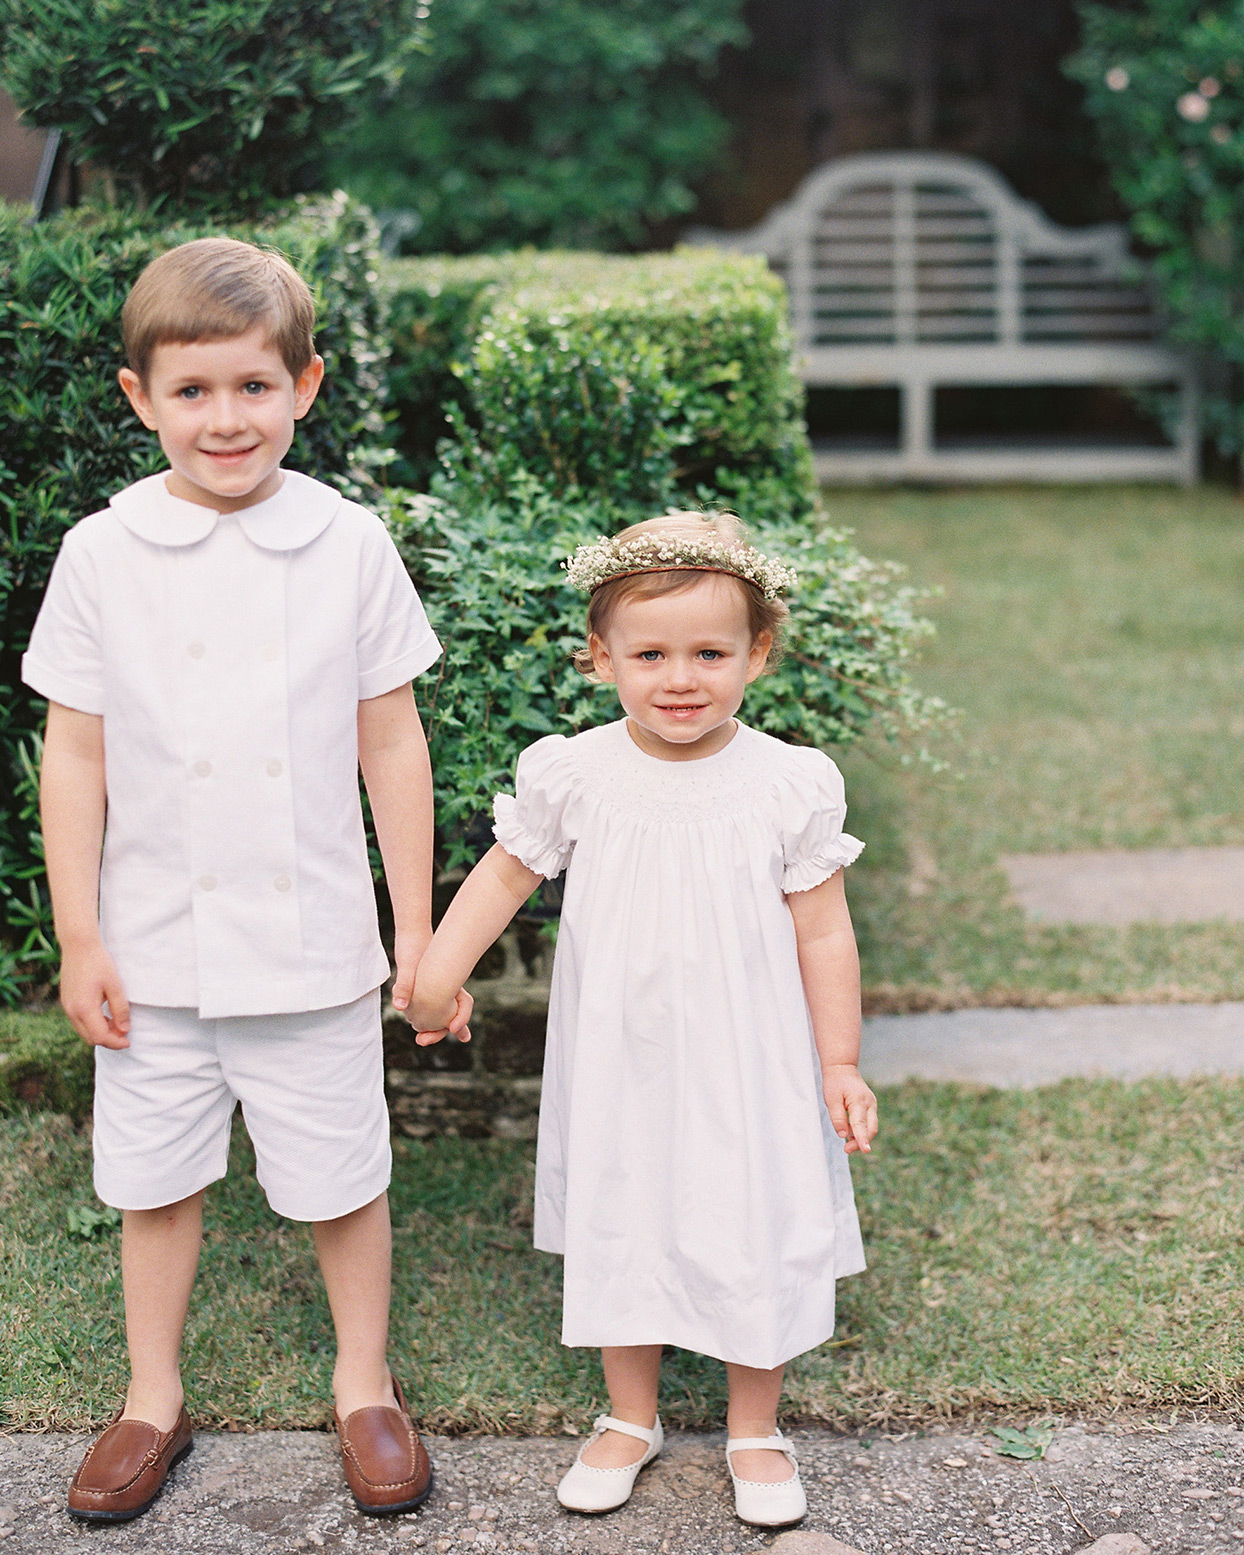 beverly steve wedding children dressed in white